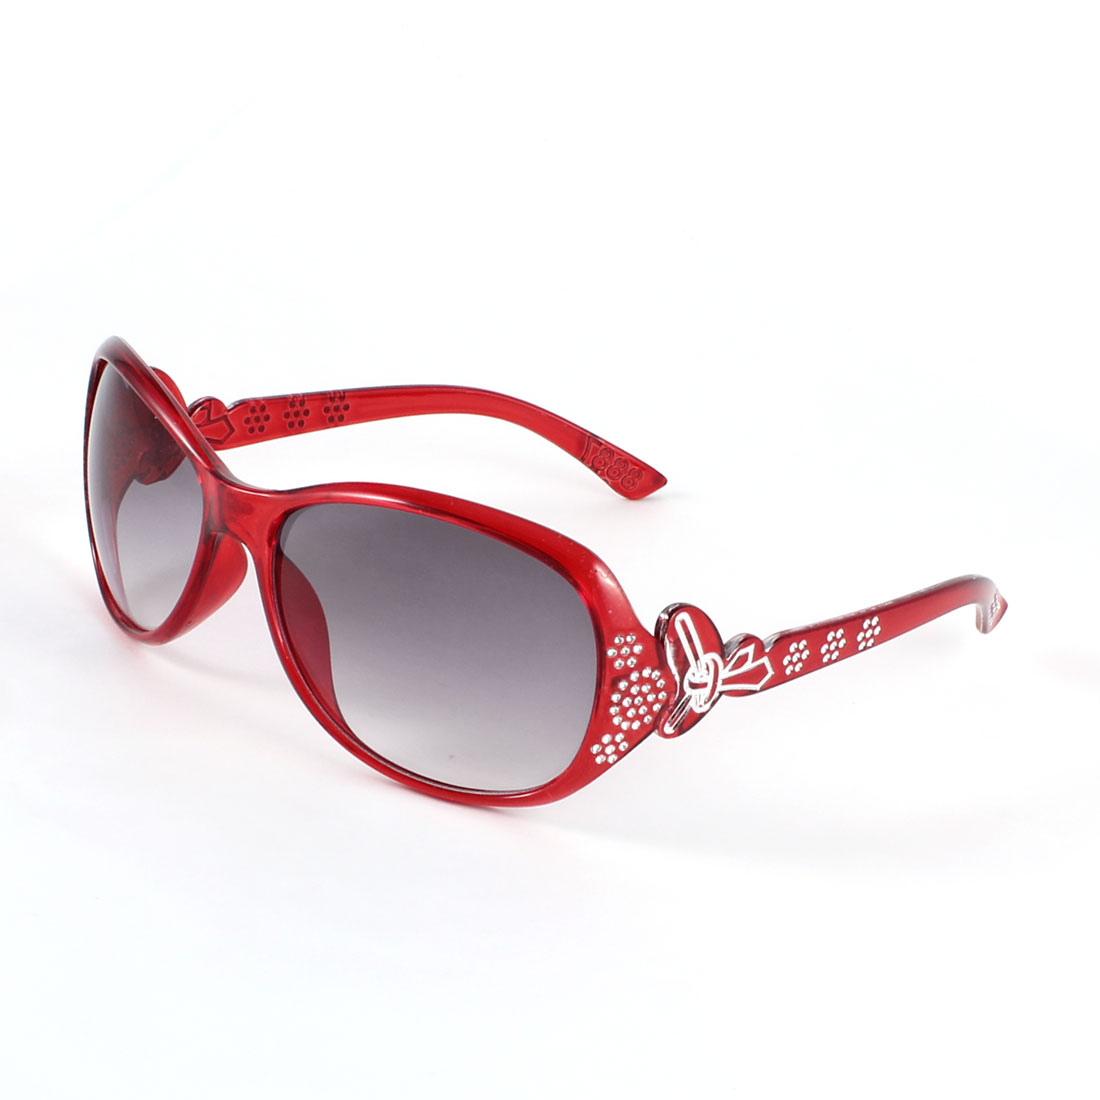 Clear Carmine Lens Rhinestone Letter Decor Sunglasses Carmine for Women